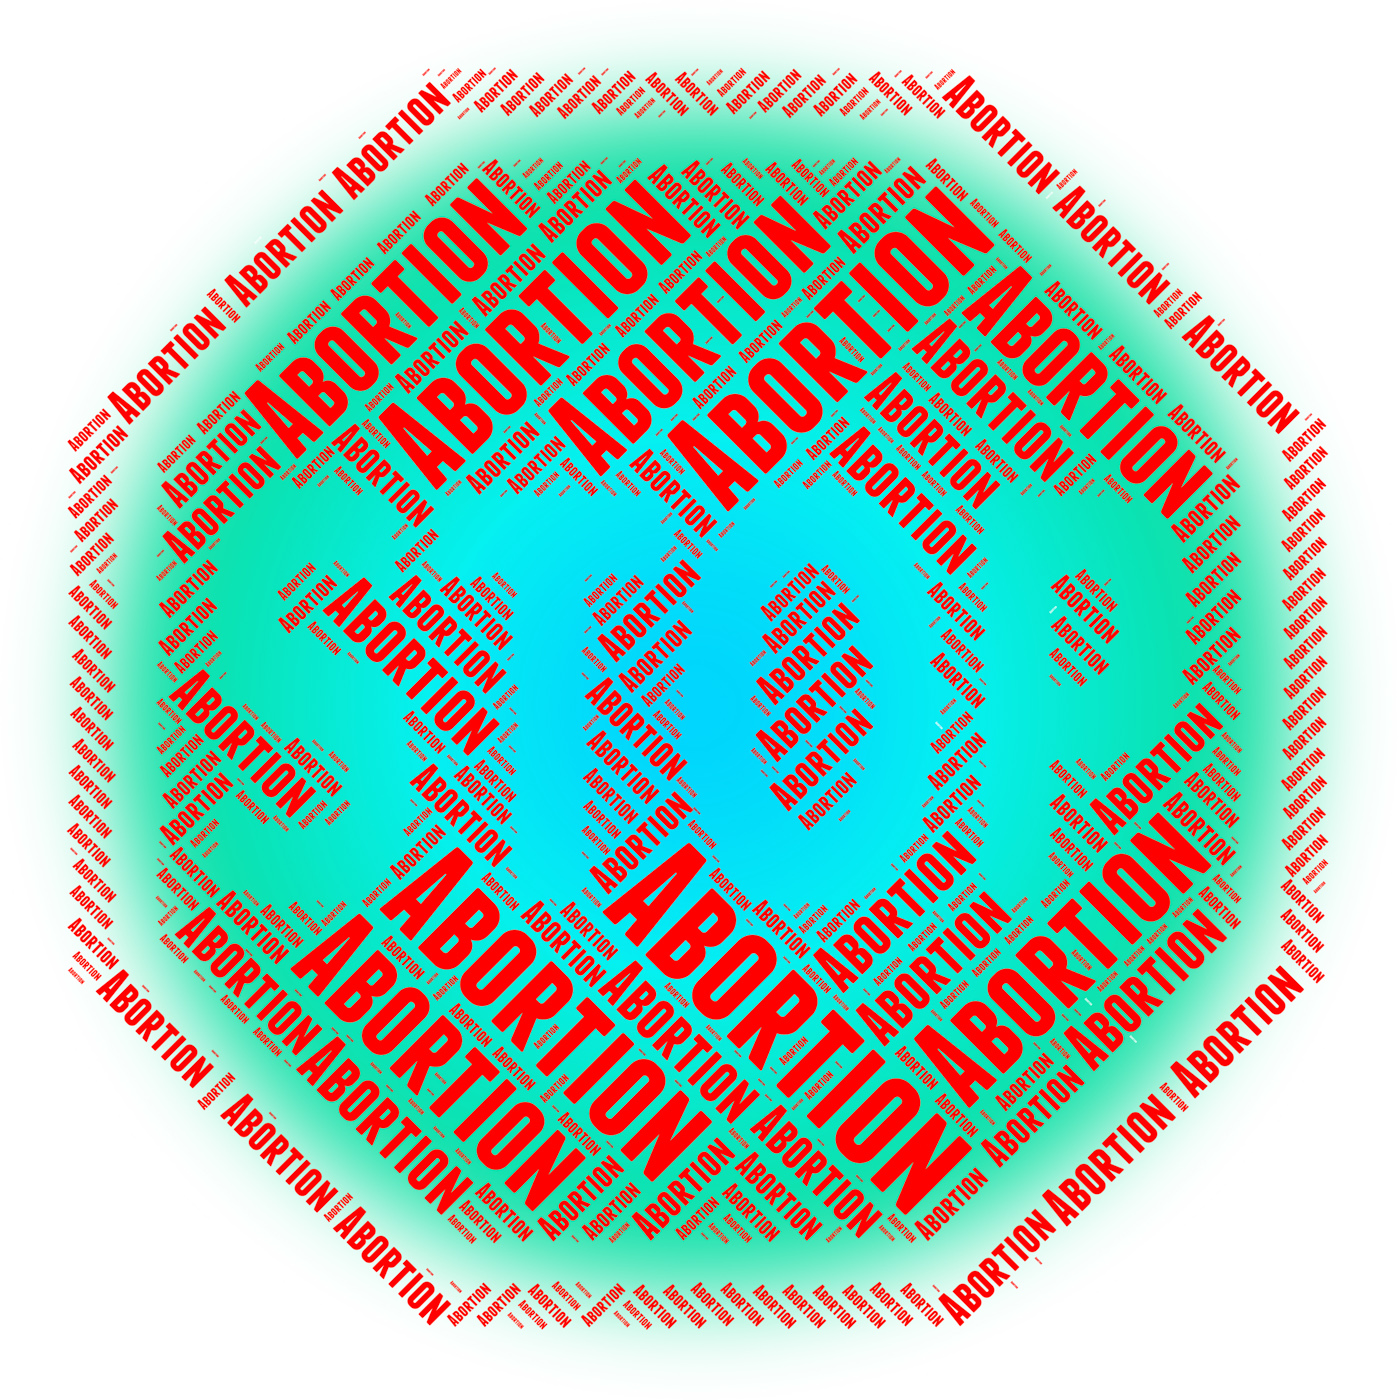 Stop Abortion Means Warning Sign And Aborting, Abort, Caution, Control, Danger, HQ Photo